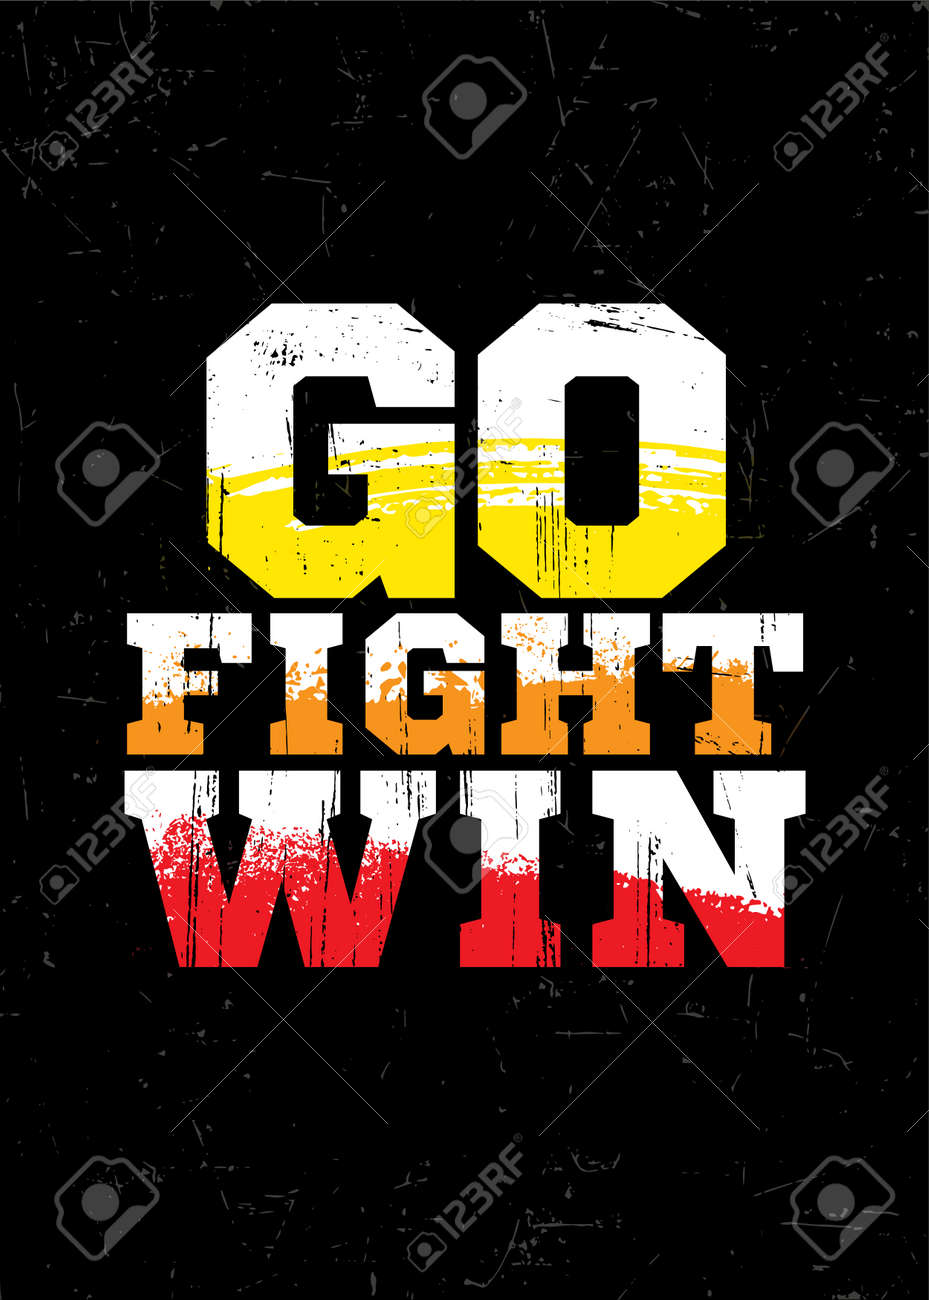 Go. Fight. Win. Cheerleaders Typography Inspiring Workout Motivation Quote Banner. Grunge Illustration On Rough Wall Urban Background - 167390713